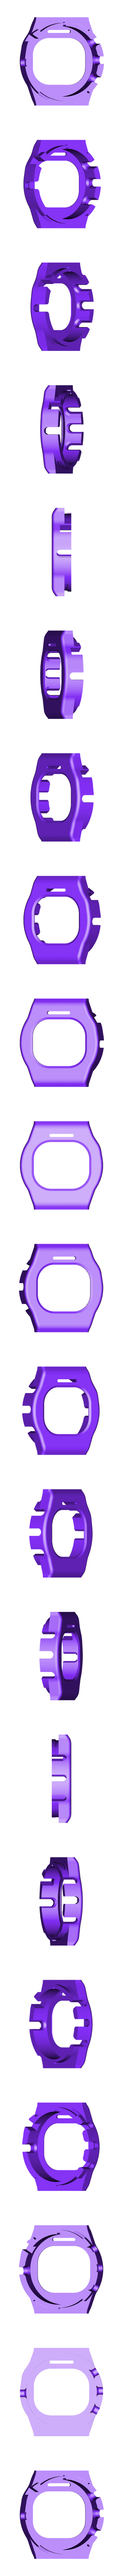 heartrate_watch_top_a_rev01.stl Download free STL file Heart Rate Watch • 3D printable model, project3dprint